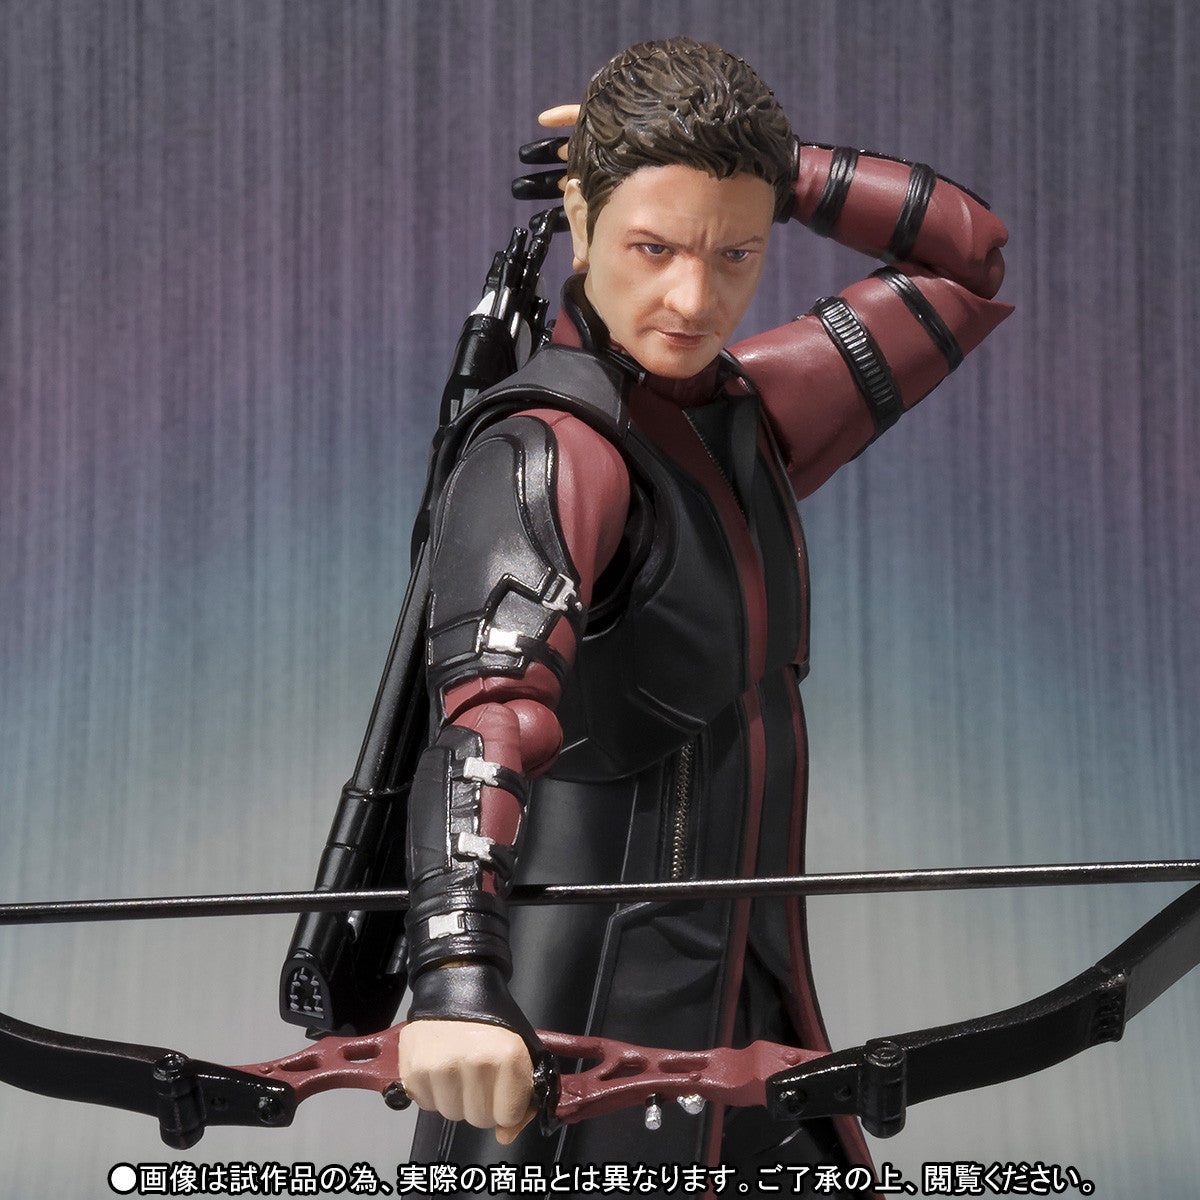 S.H.Figuarts - Avengers: Age of Ultron - Hawkeye (TamashiiWeb Exclusive) - Marvelous Toys - 6